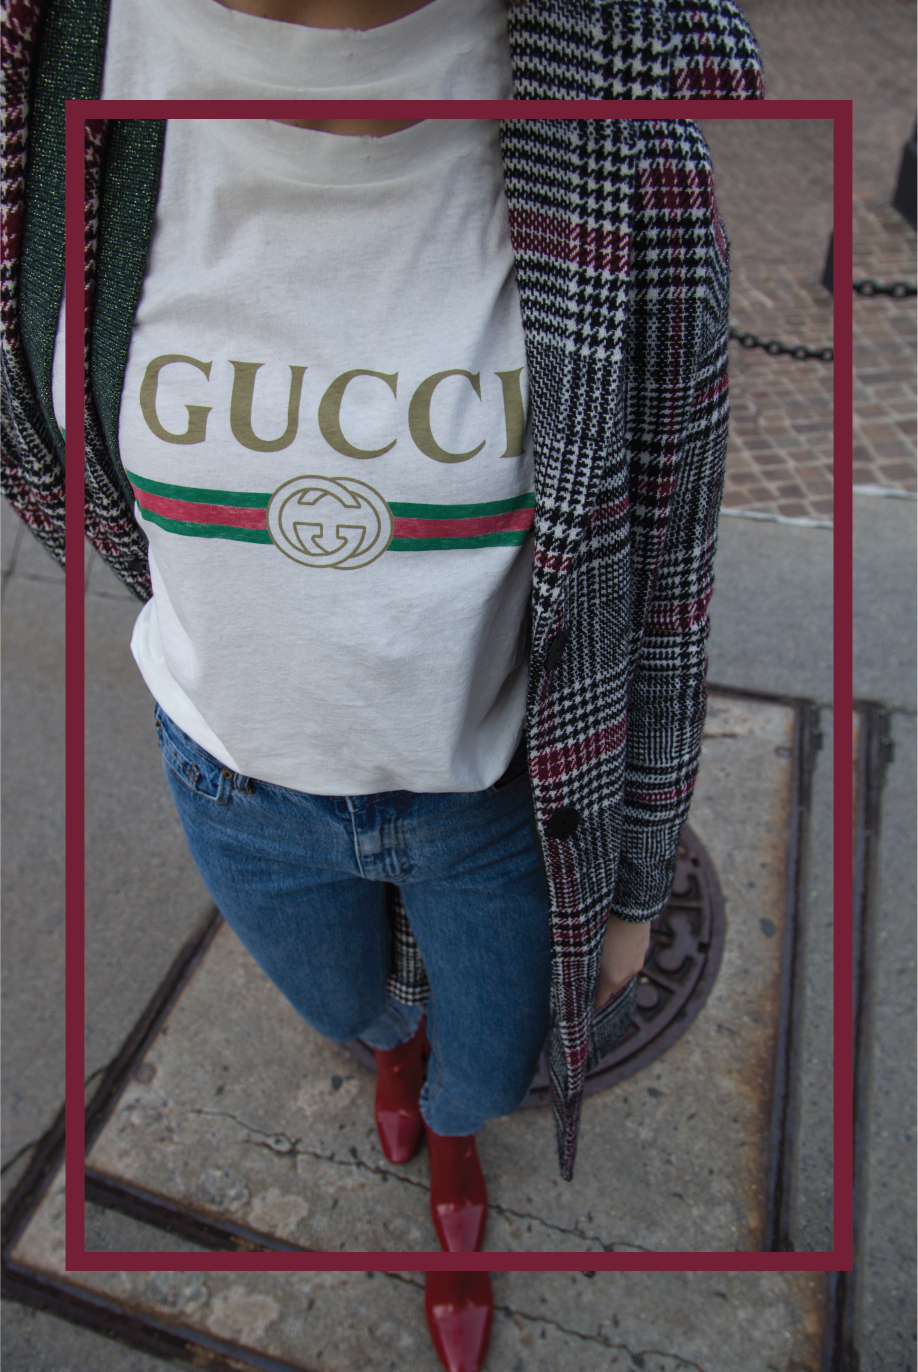 153 gucci t-shirt-07